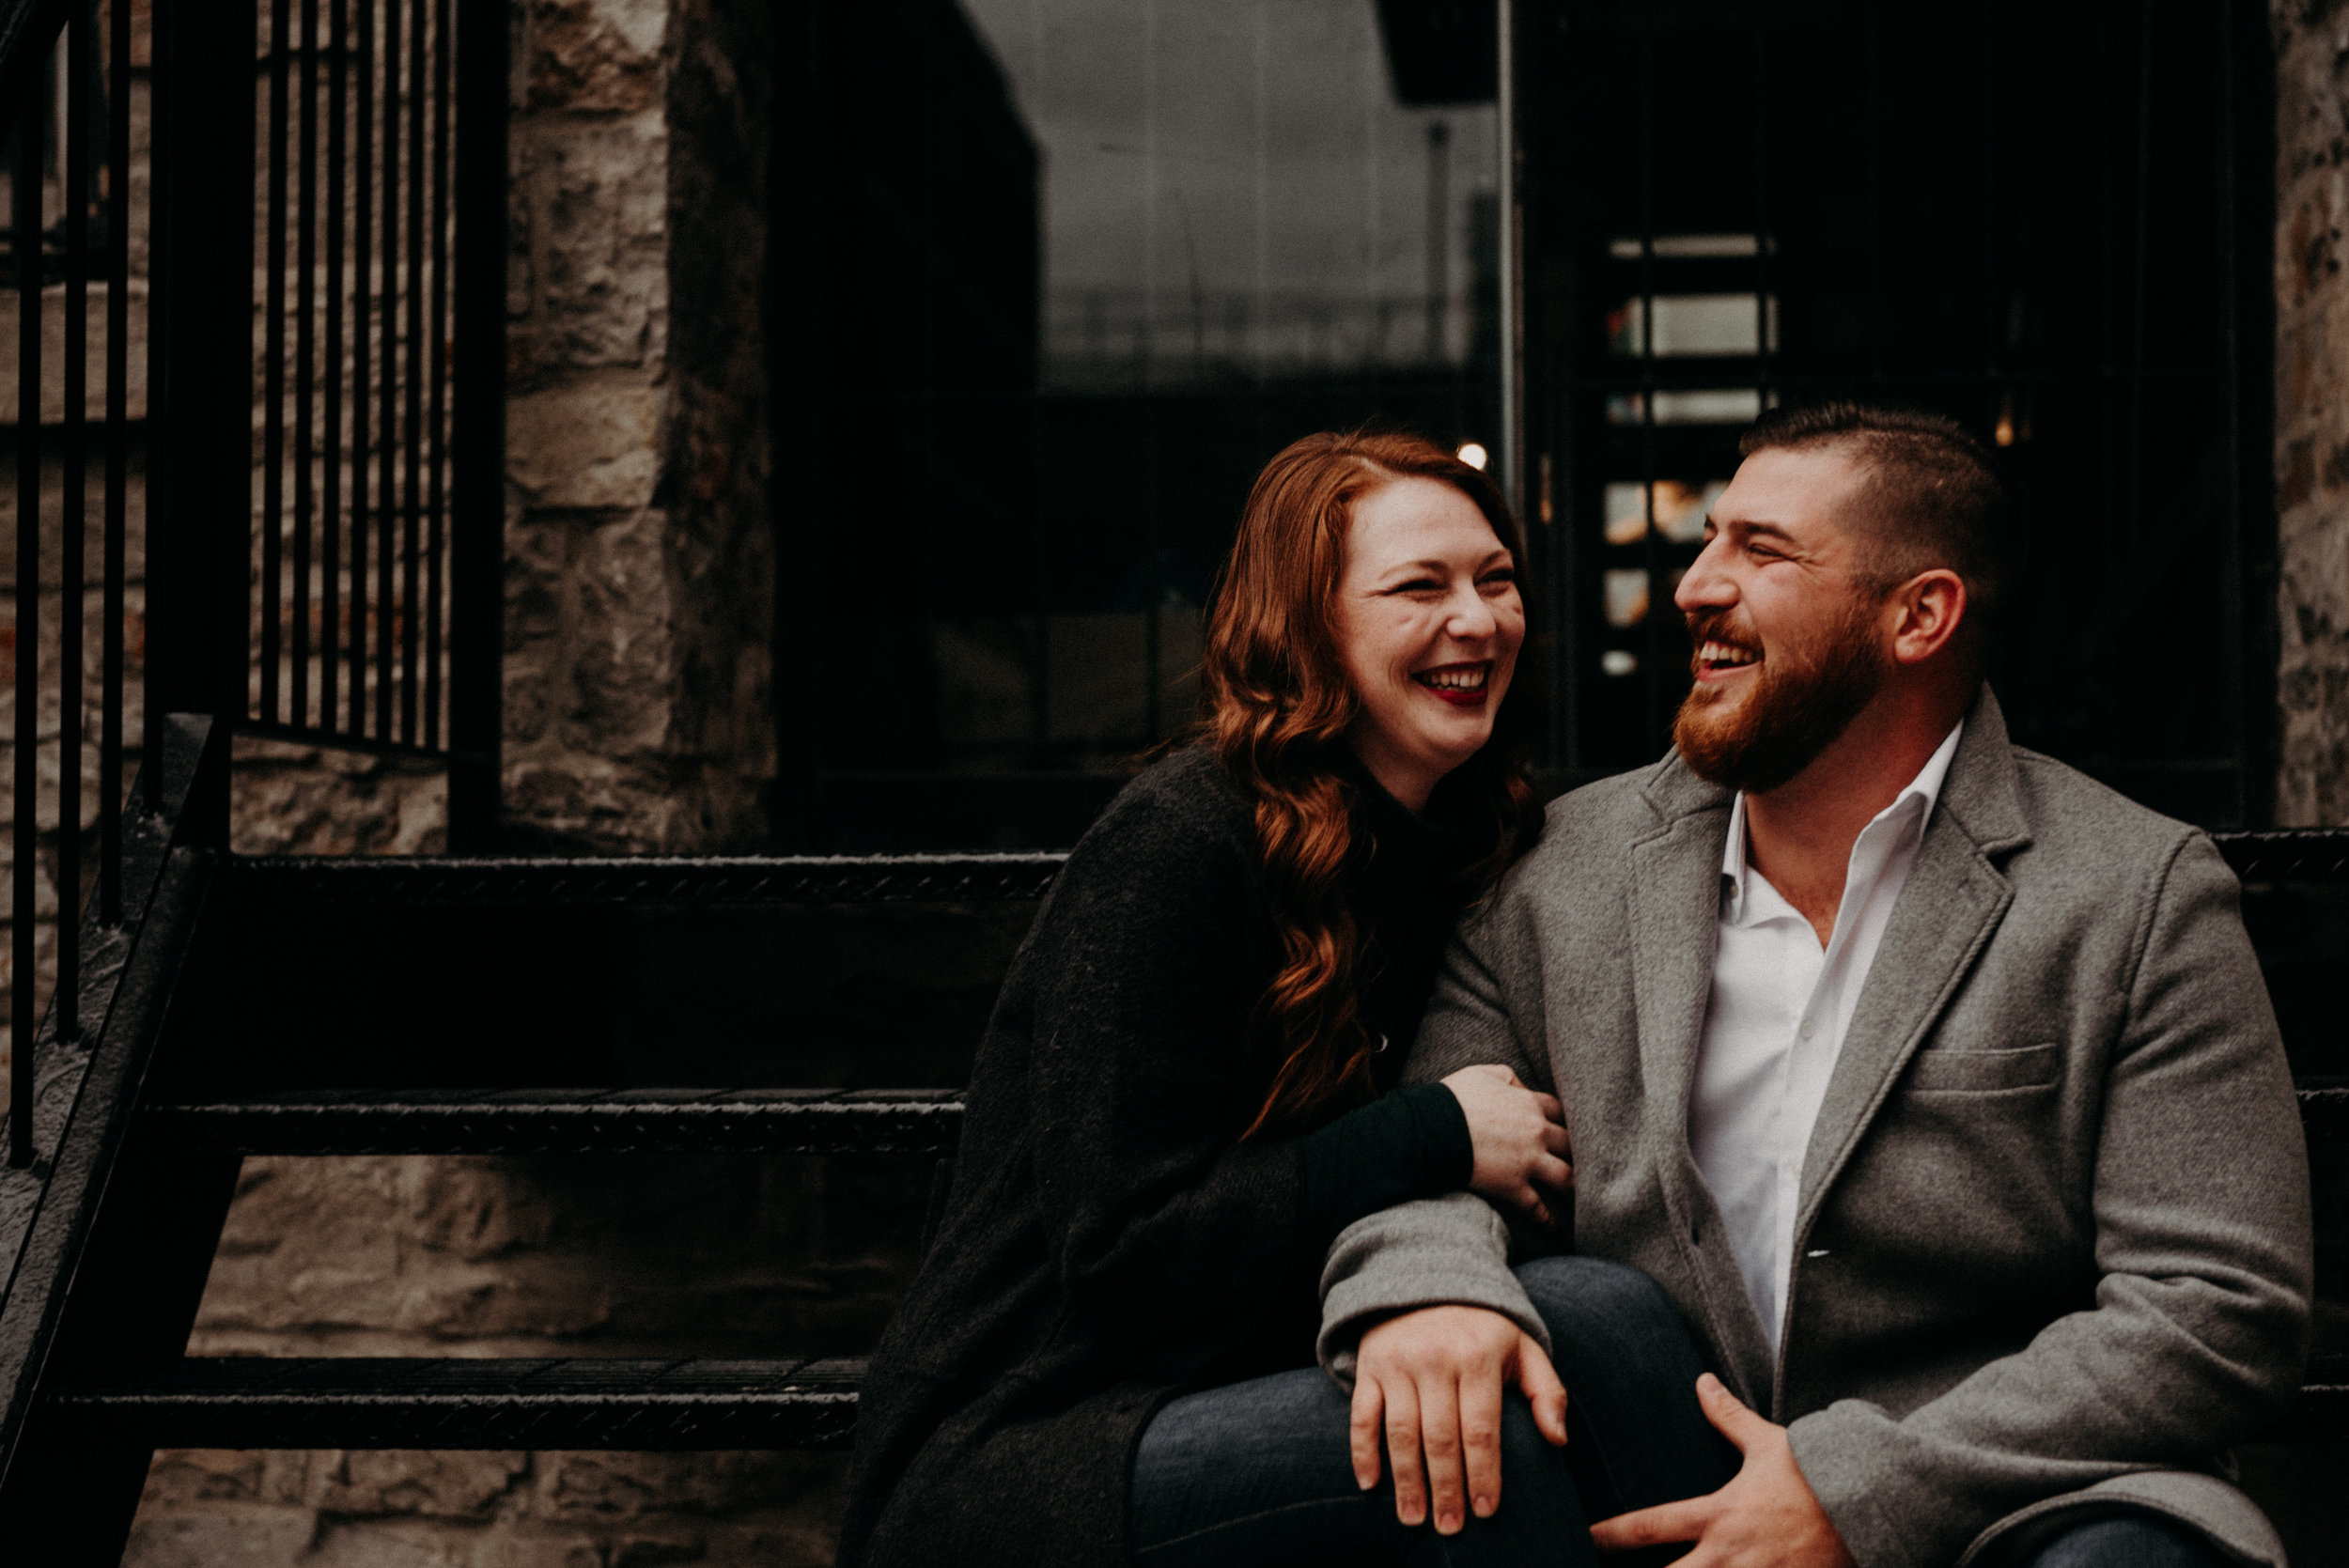 Mocha Tree Studios Ottawa Wedding and Engagement Photographer and Videographer Dark Moody Intimate Authentic Modern Romantic Cinematic Best Candid Wedding Byward Market 4